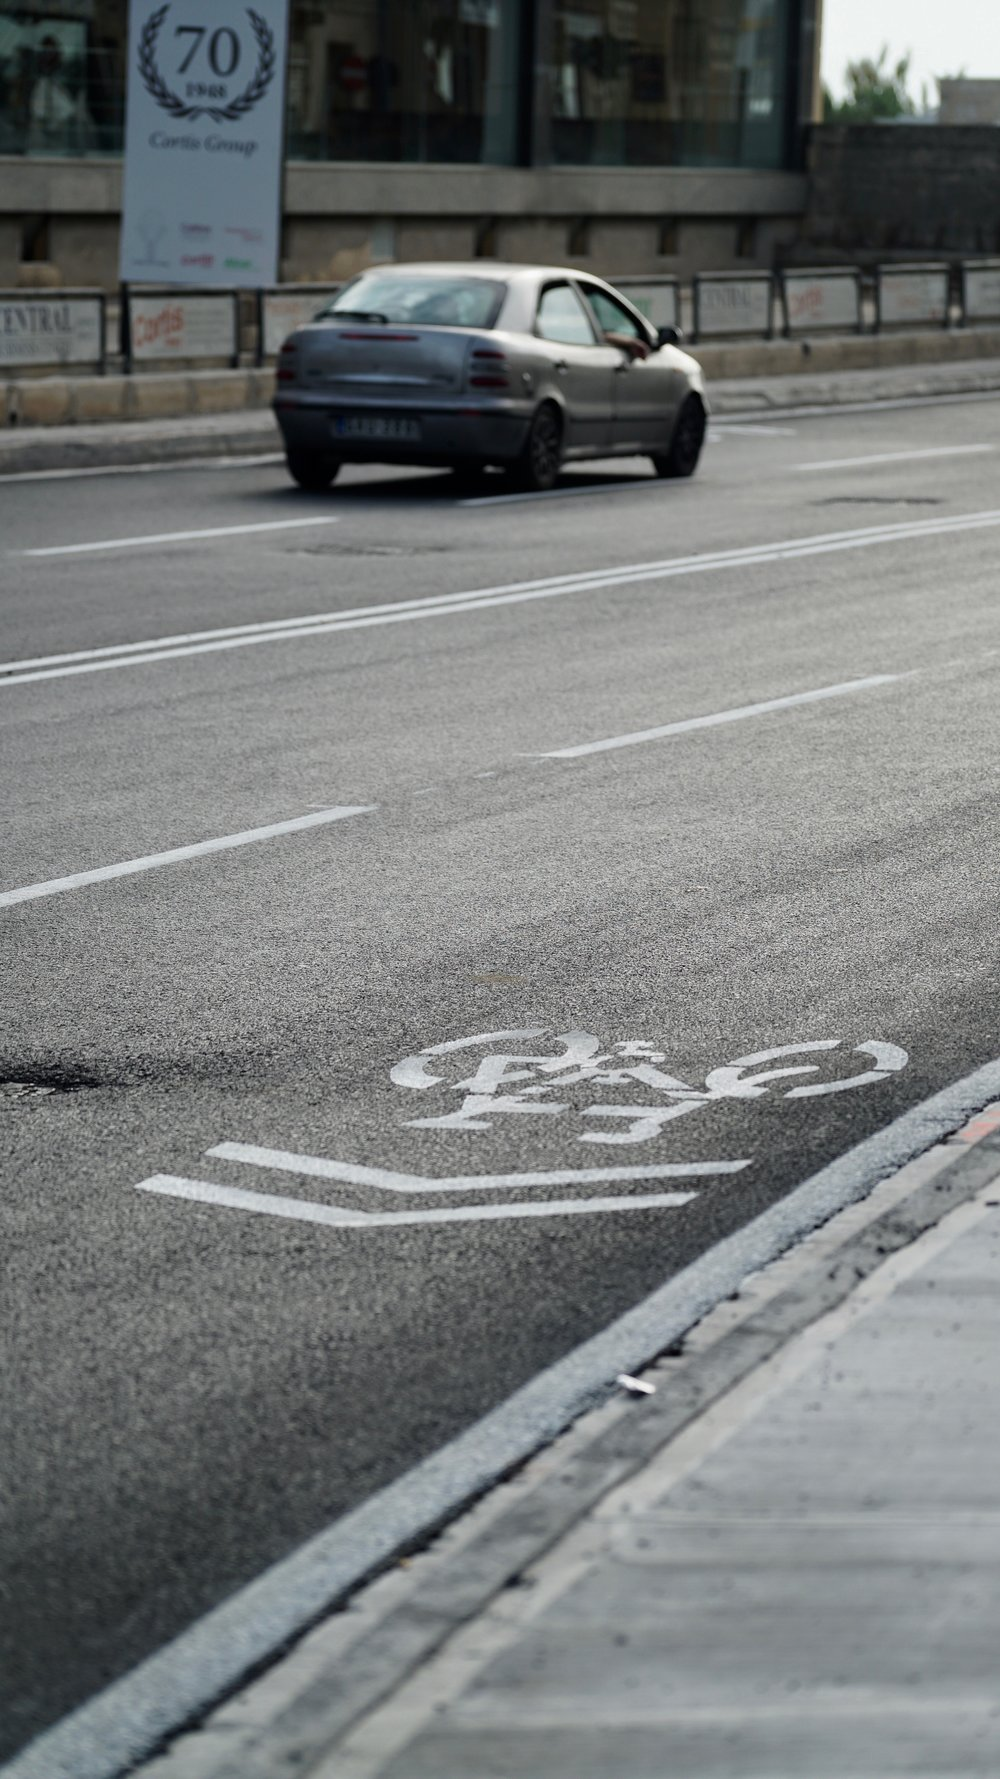 Both south and north bound advisory bicycle lanes have been lost to accommodate another car lane. Sharrows have been placed as an alternative, for BAG this is unacceptable.